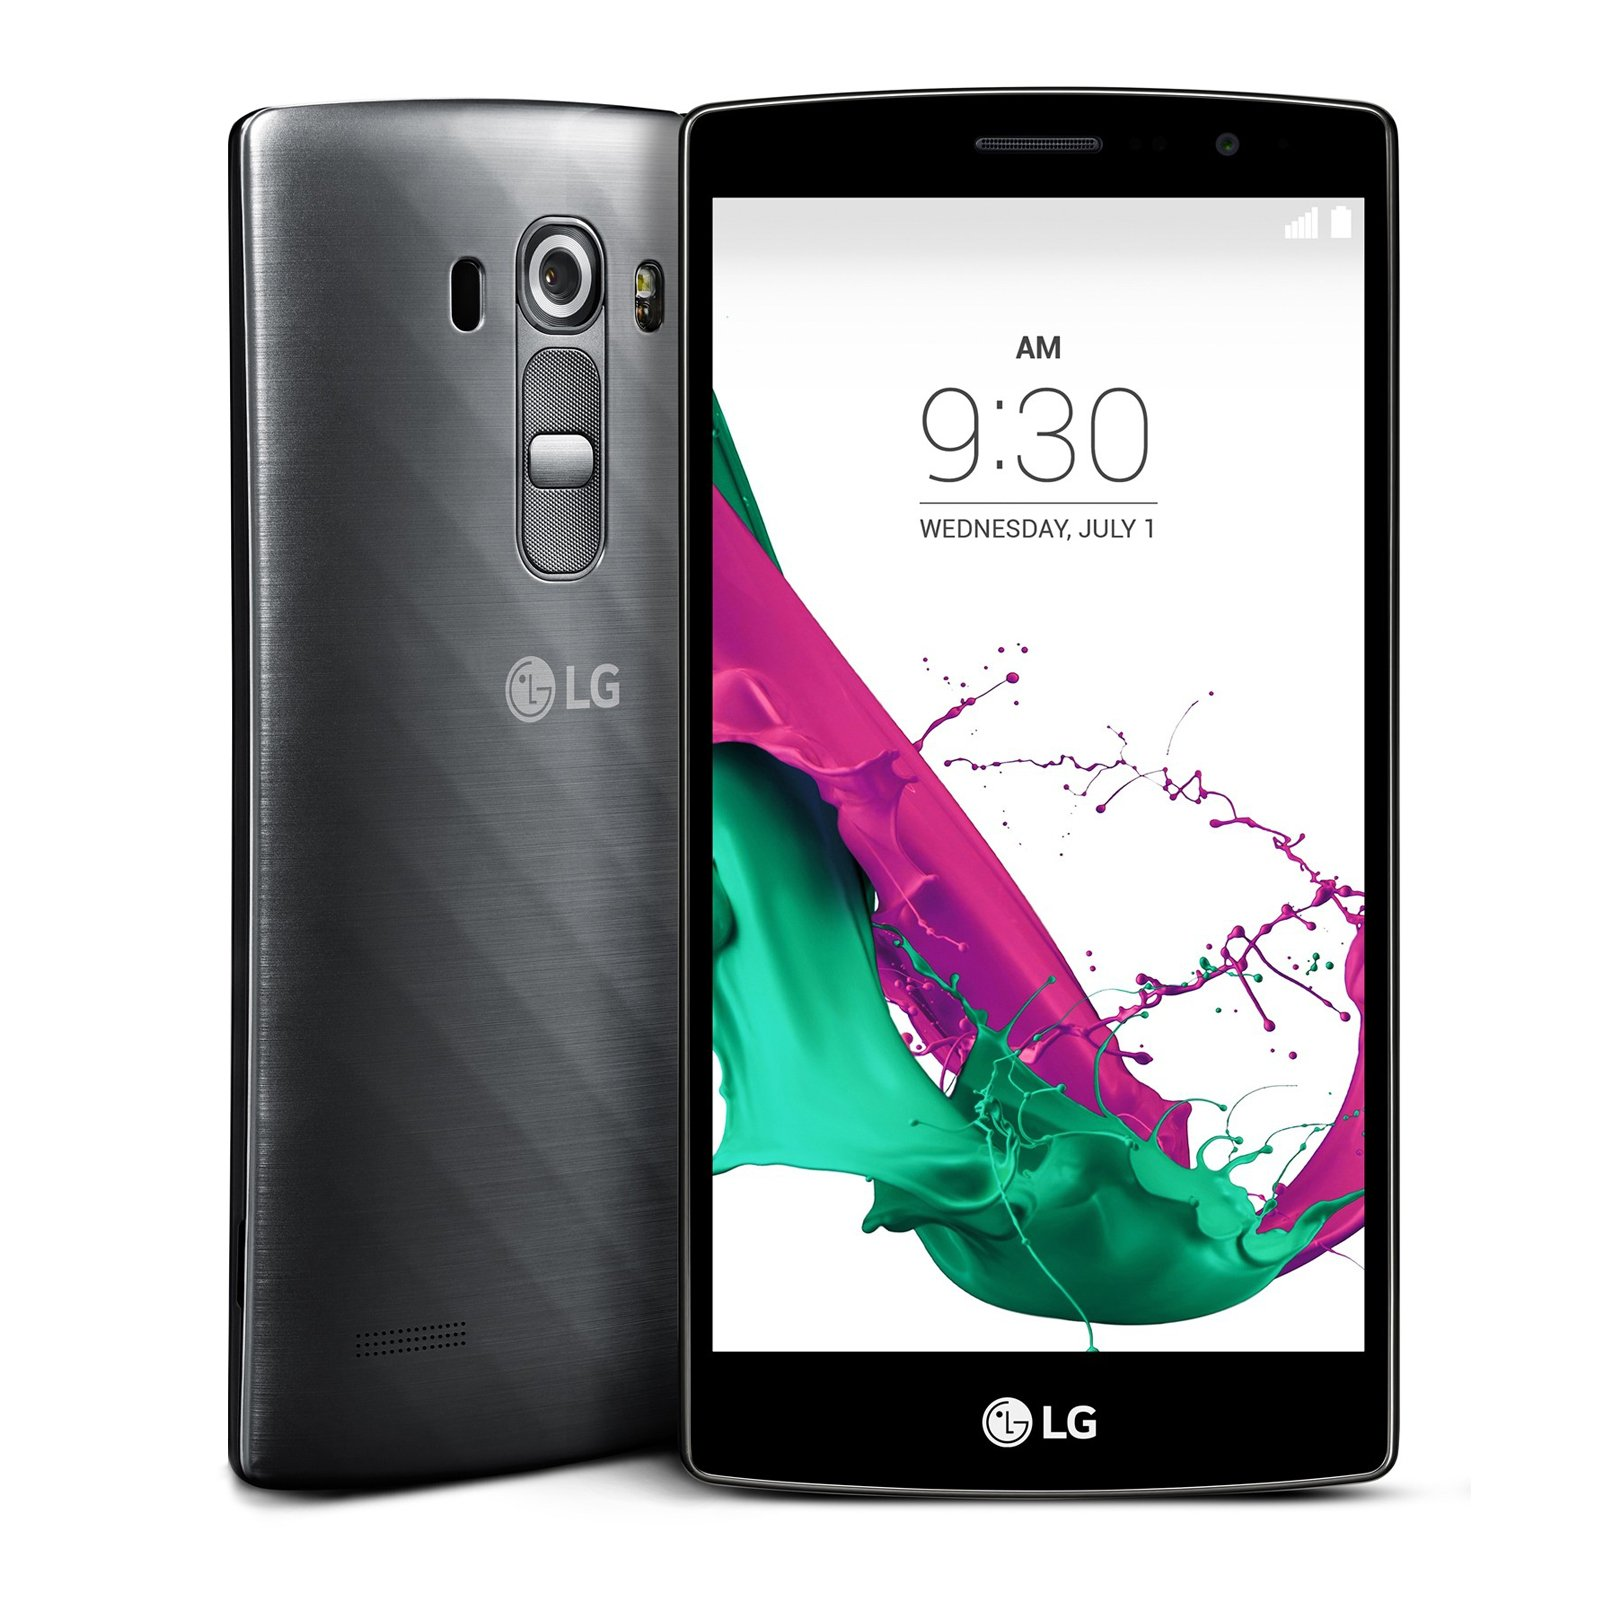 LG G4 Beat specs, review, release date